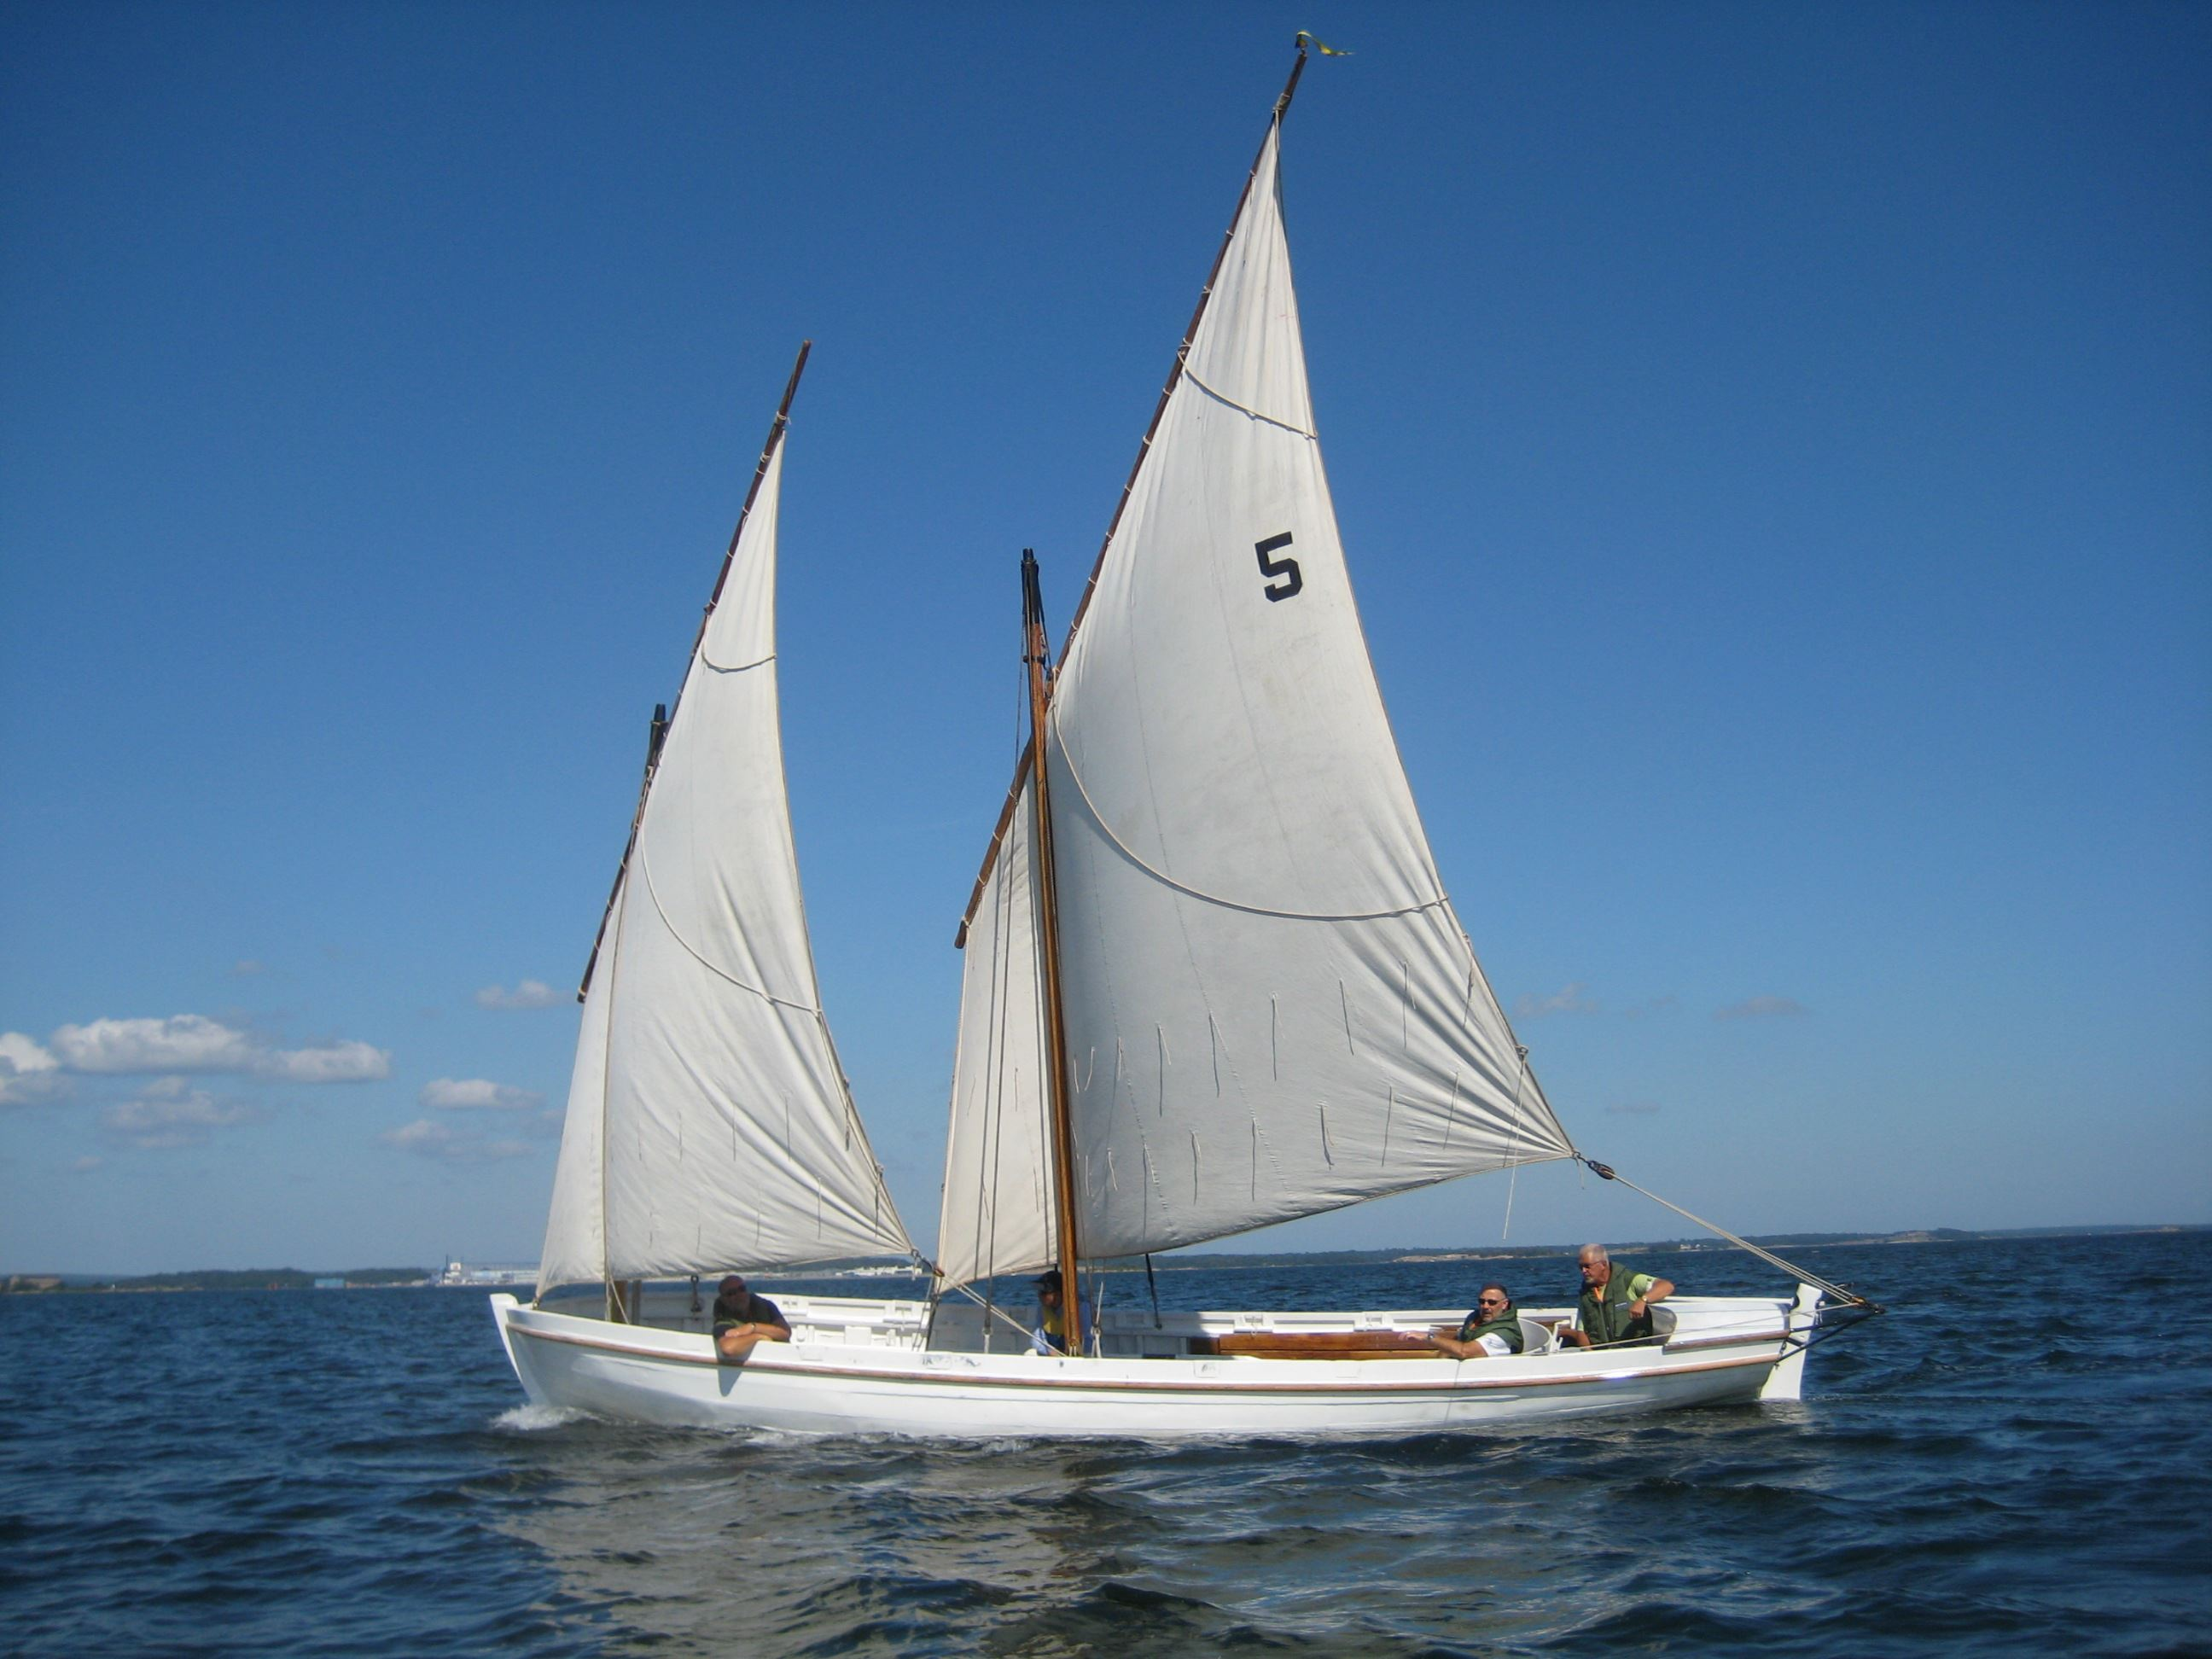 Sail with the wooden boats from the 19th century